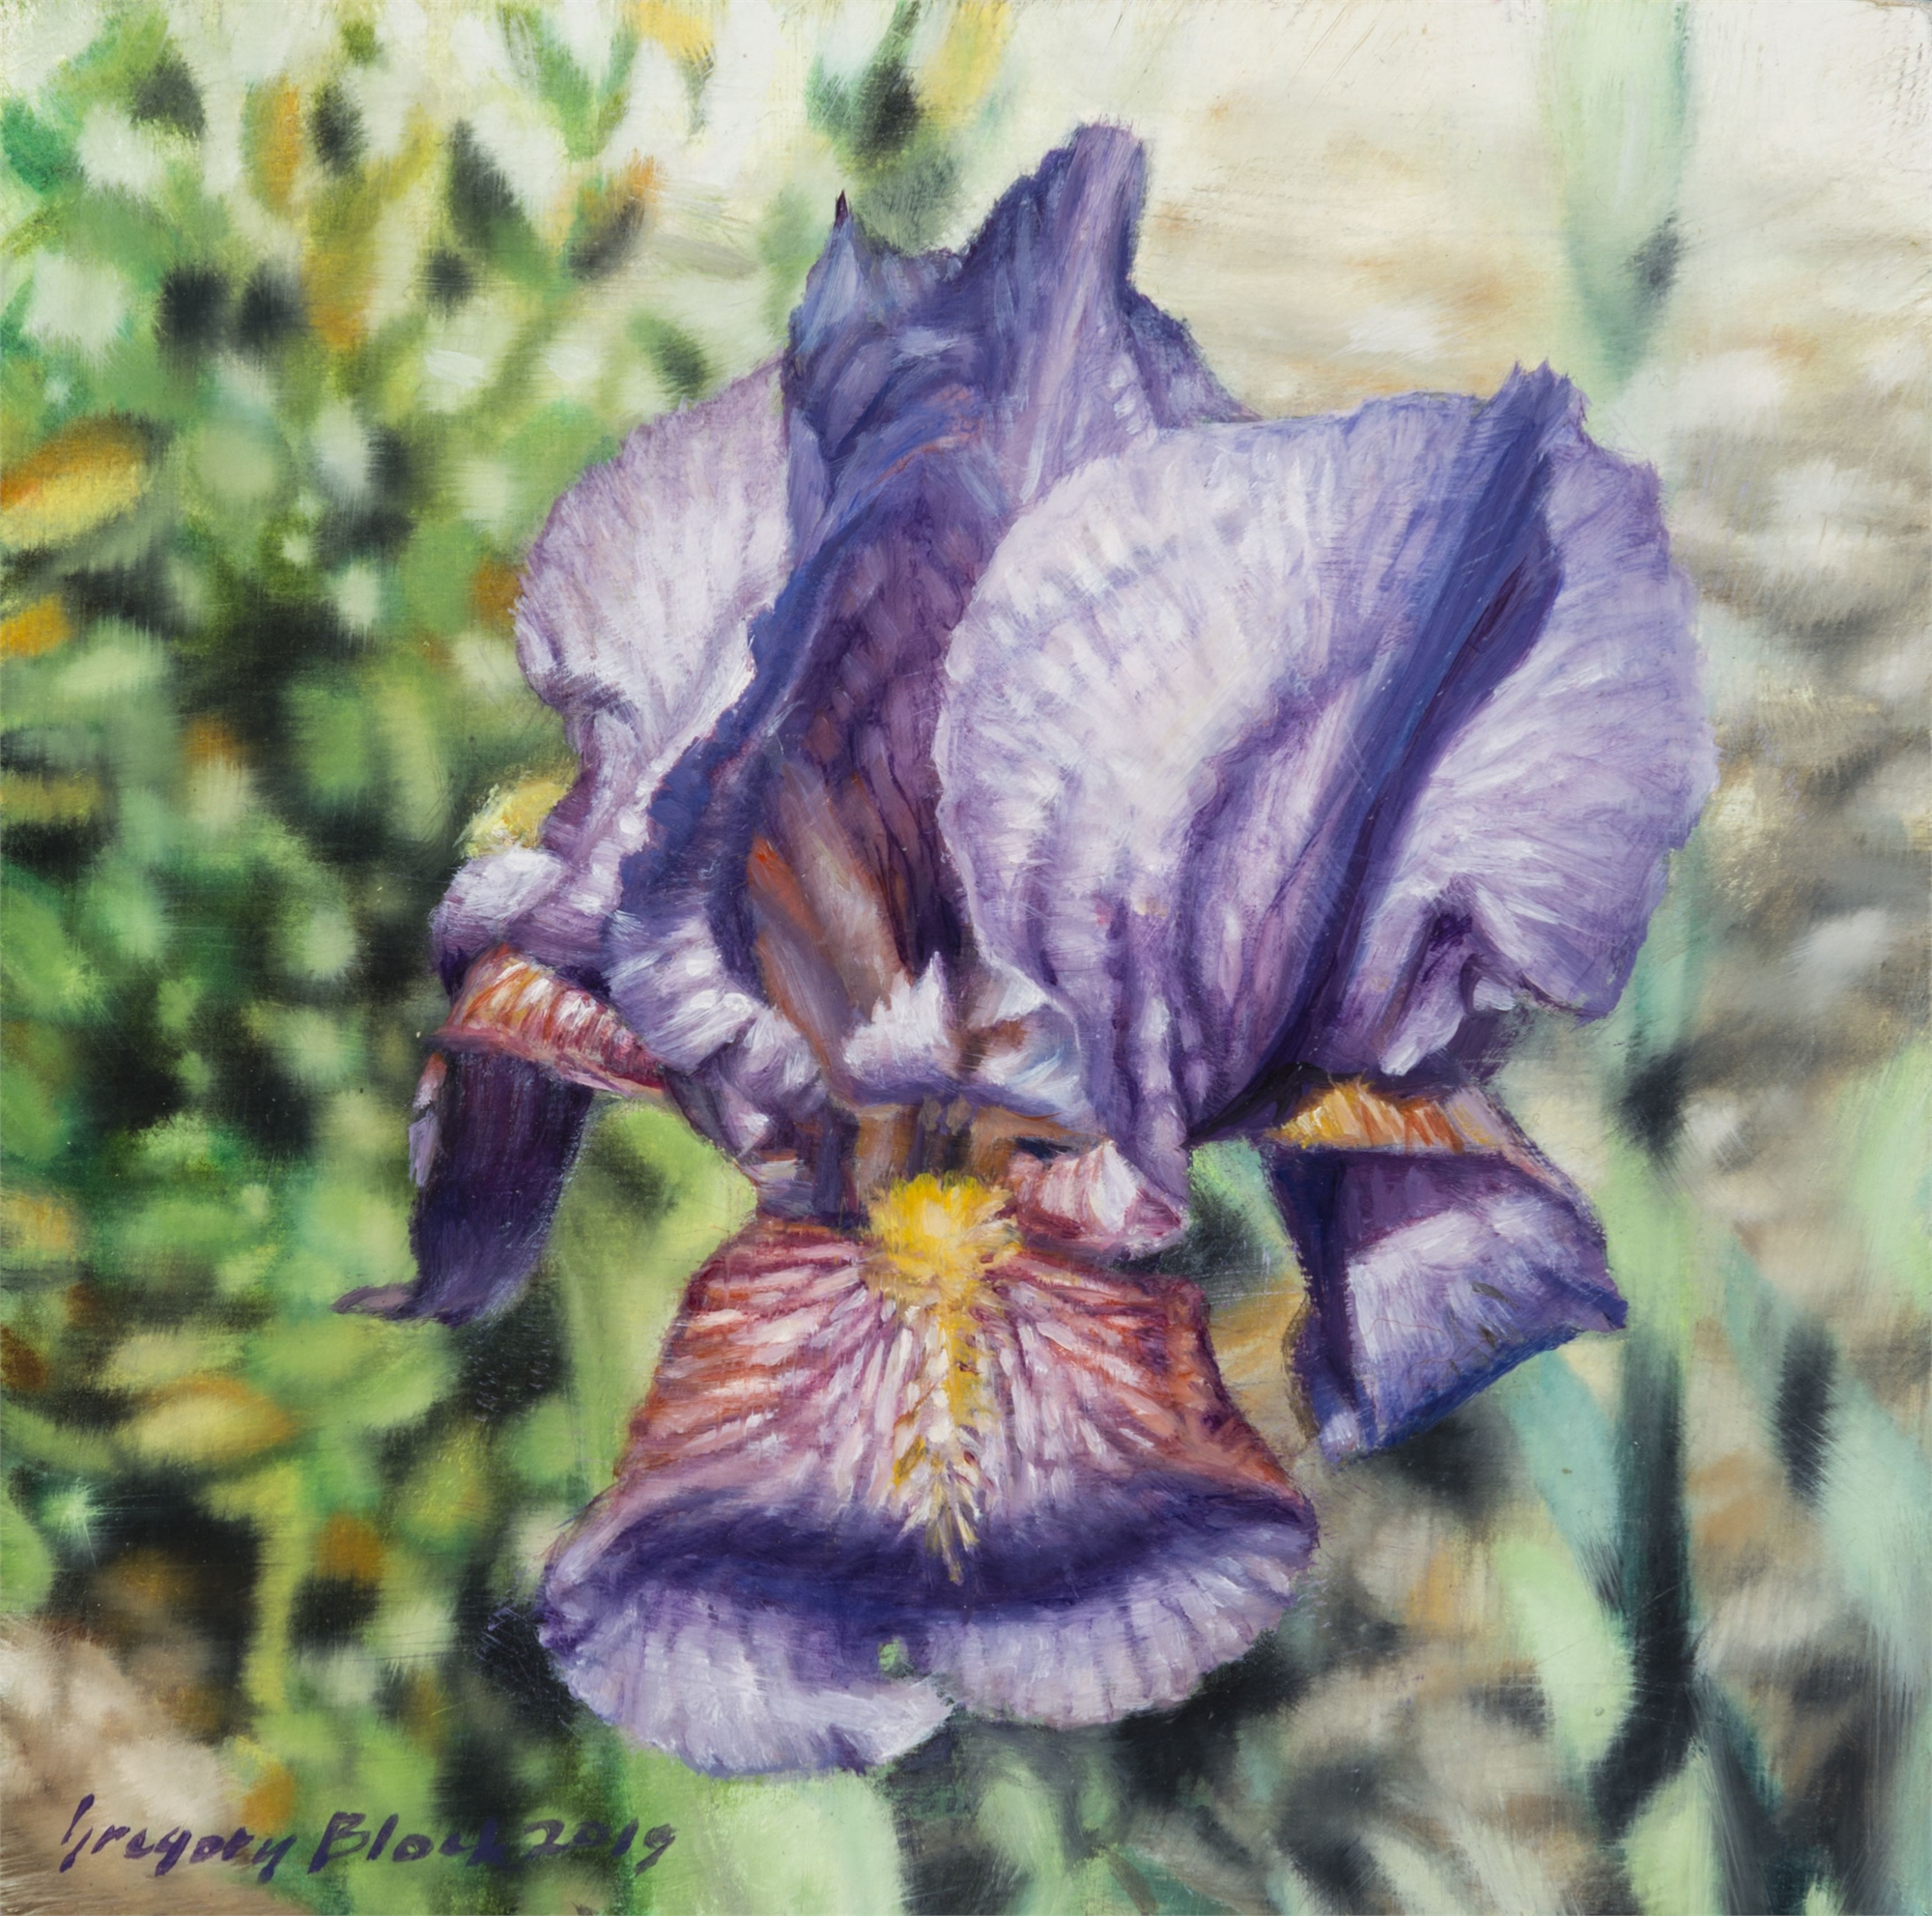 Iris 2 by Gregory Block